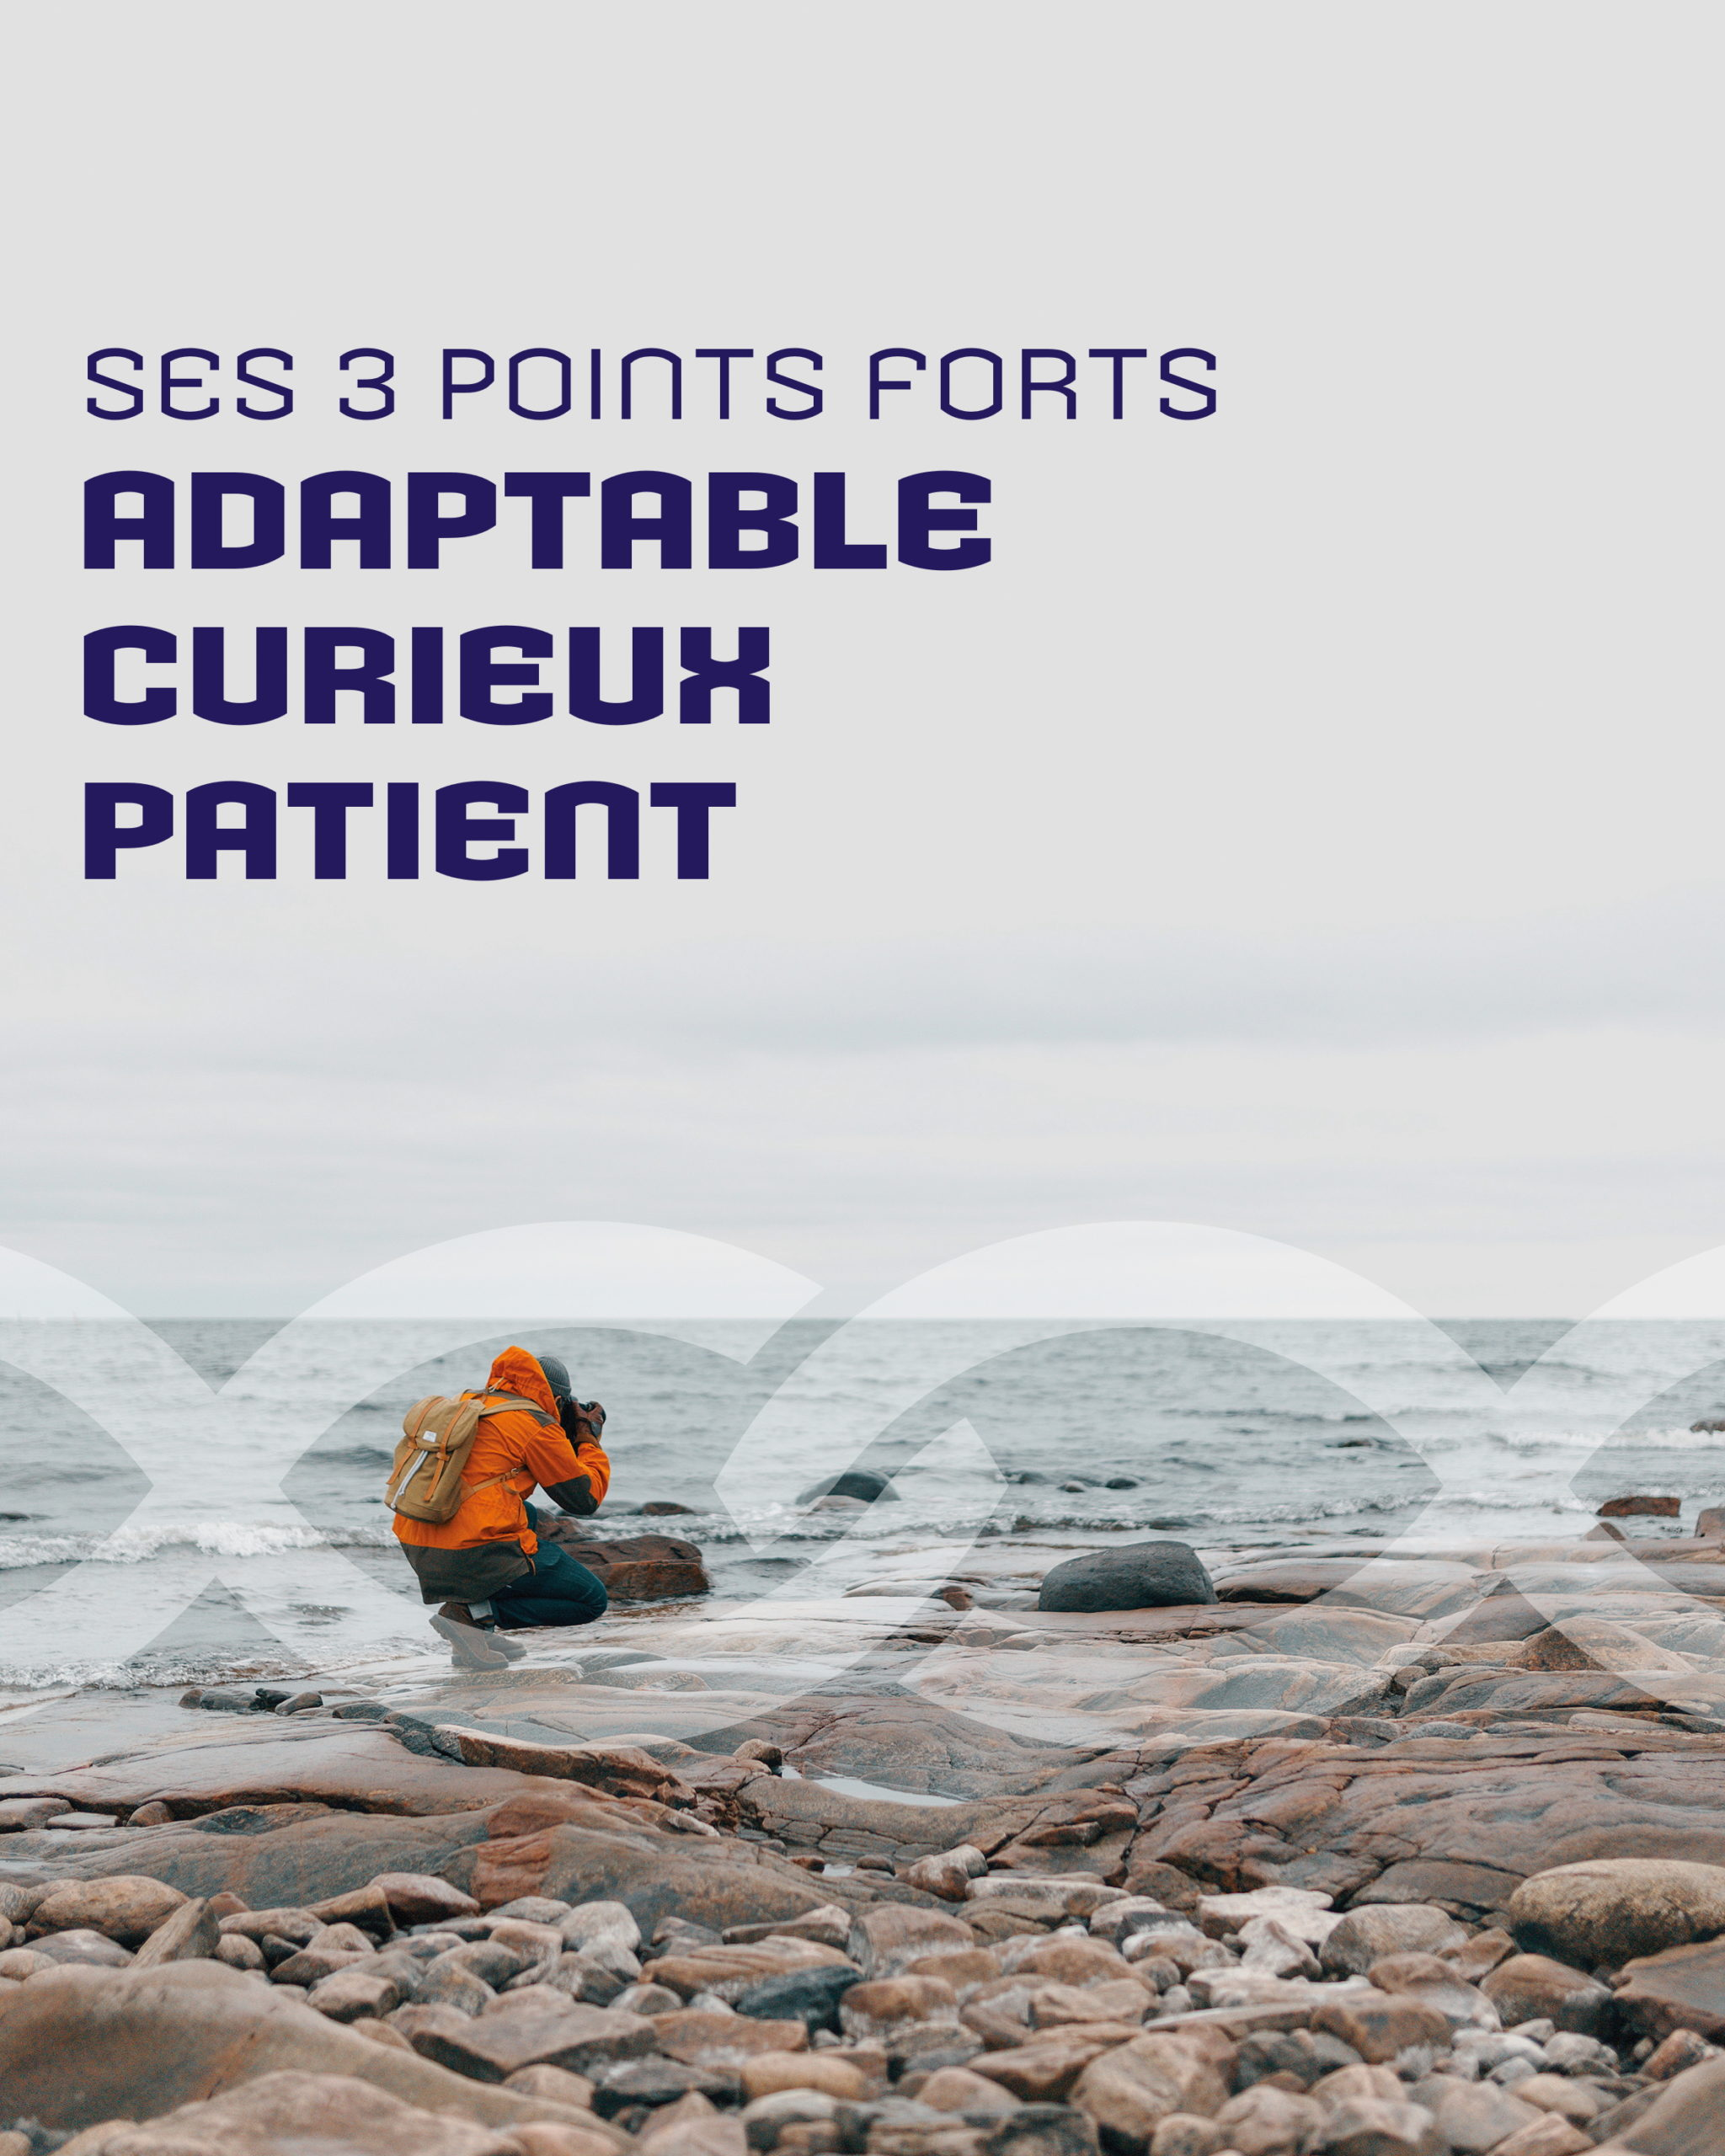 Ses 3 points forts: Adaptable, curieux, patient